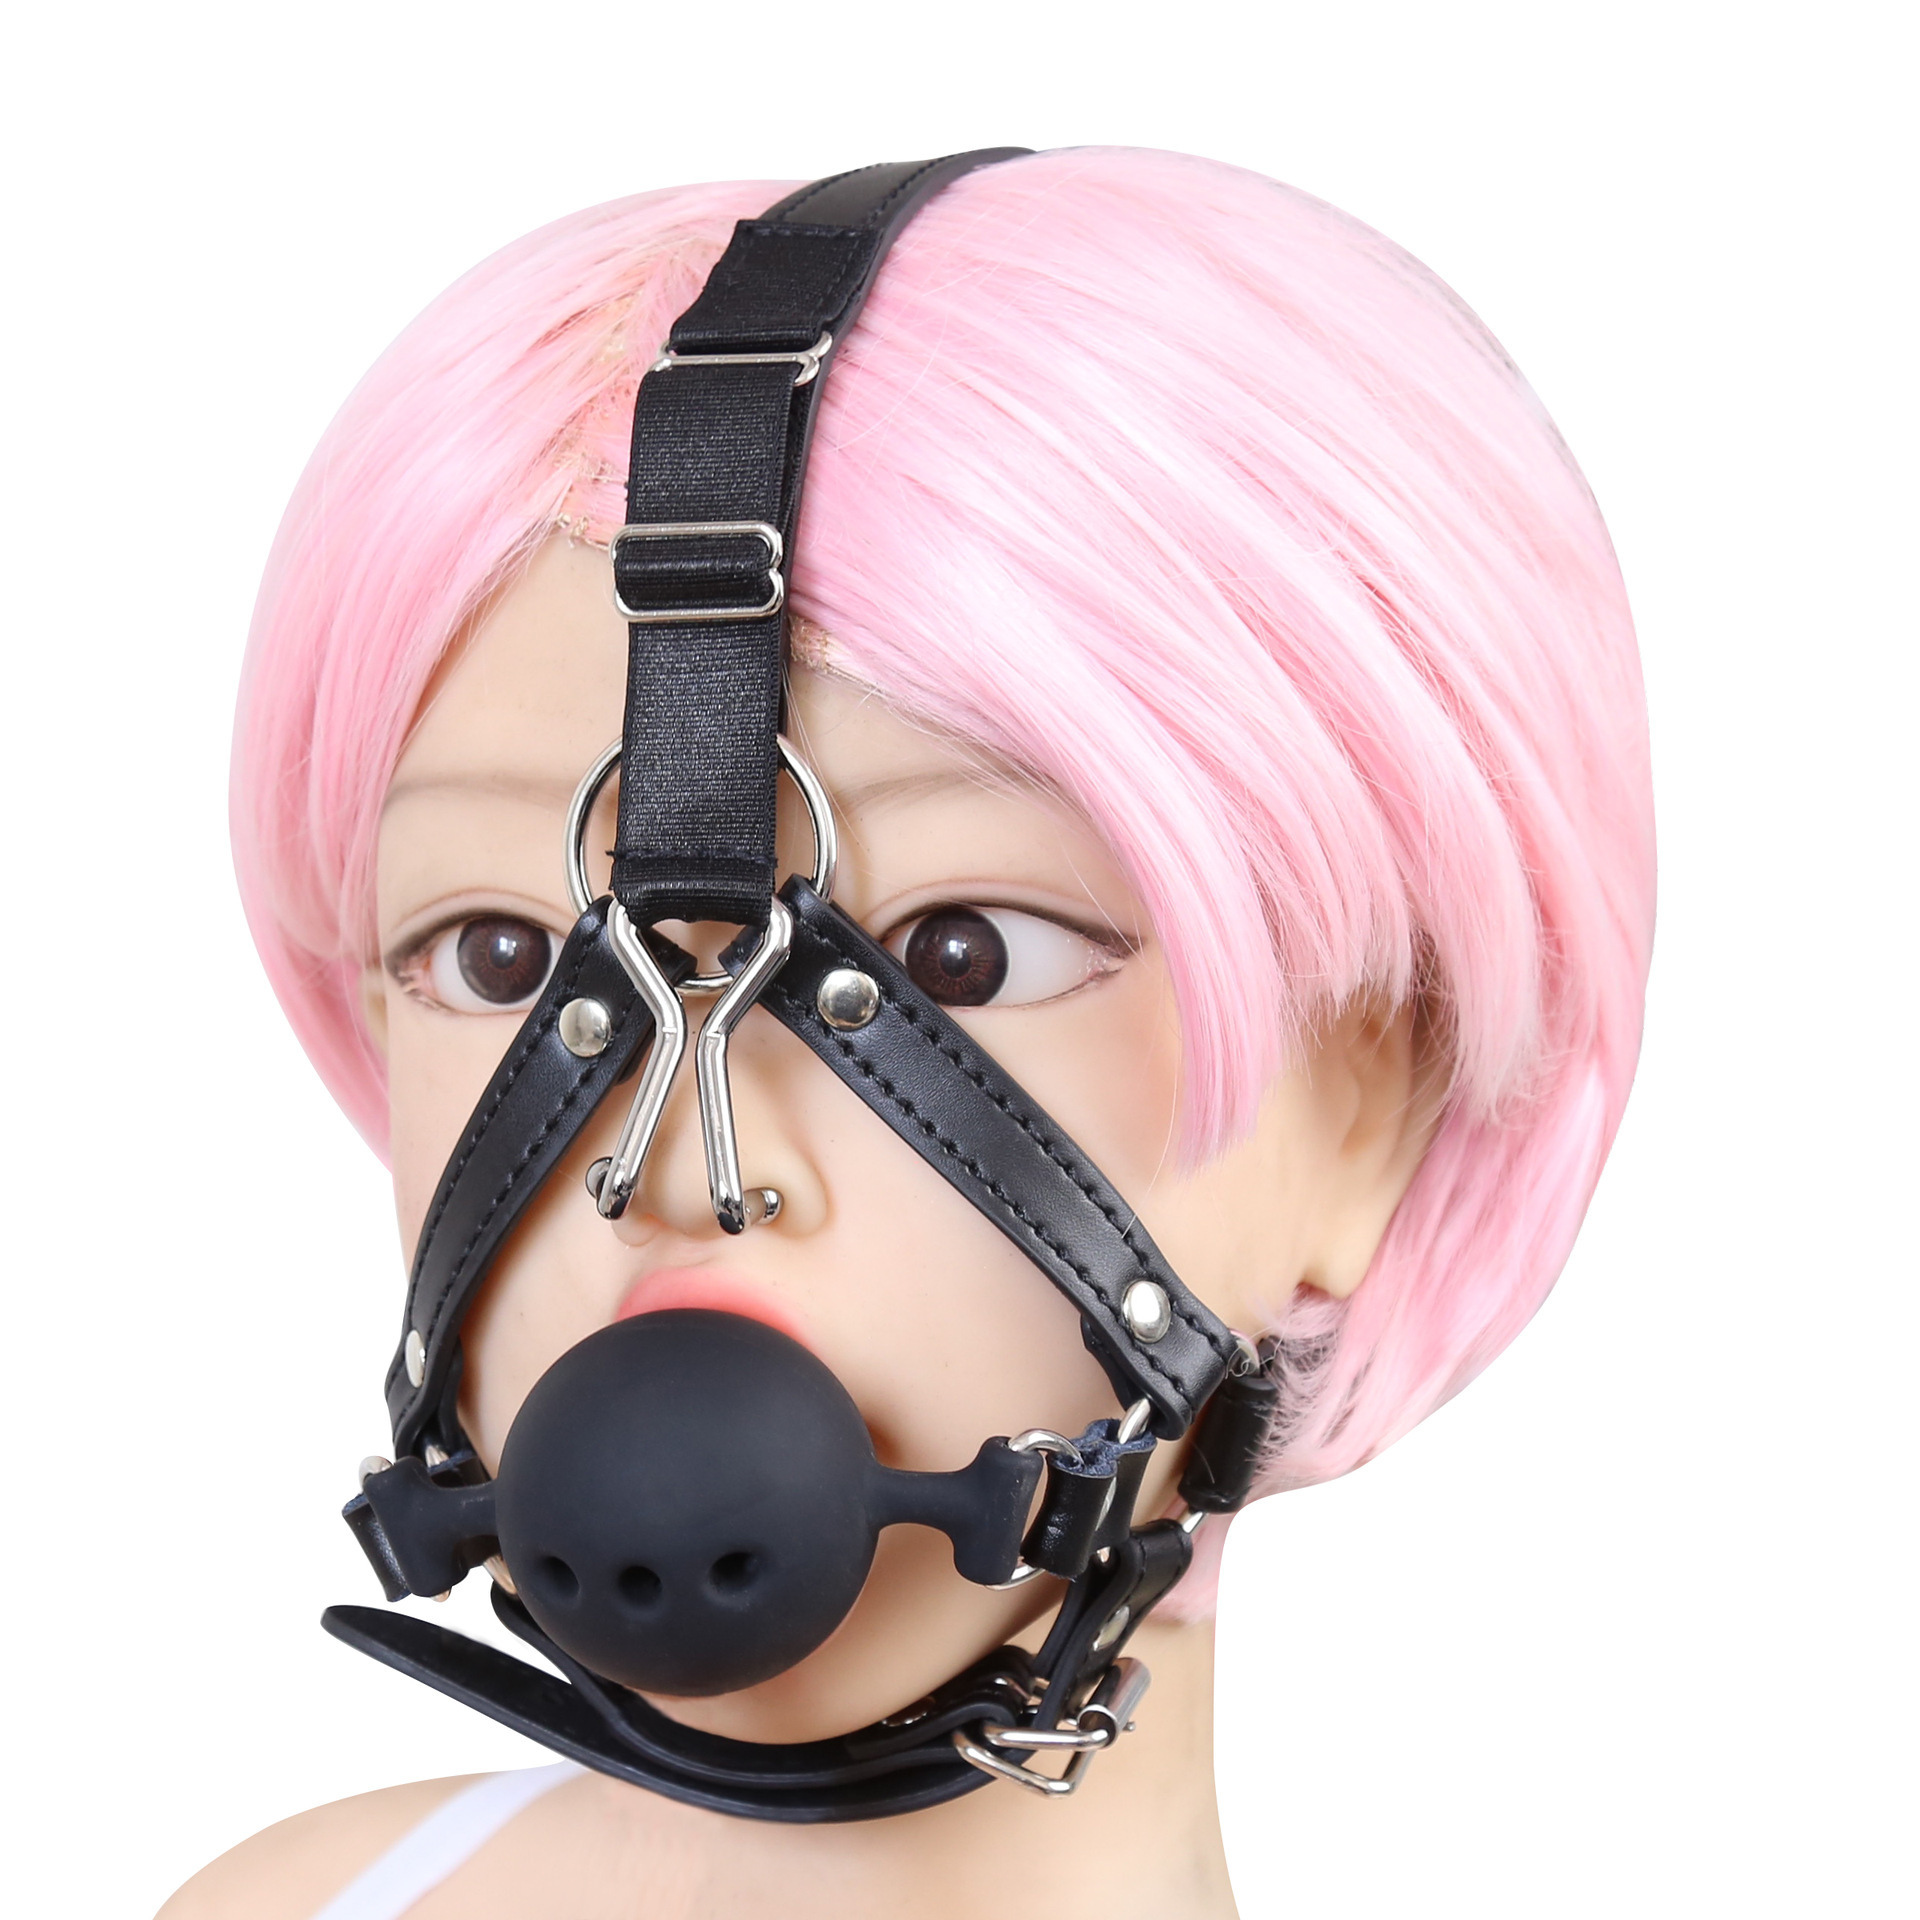 Sexy Hood Silicone Breathable Open Mouth Plug Ball Gag Head Harness Restraint With Nose Hook Adult Couple Flirt Bondage Gags